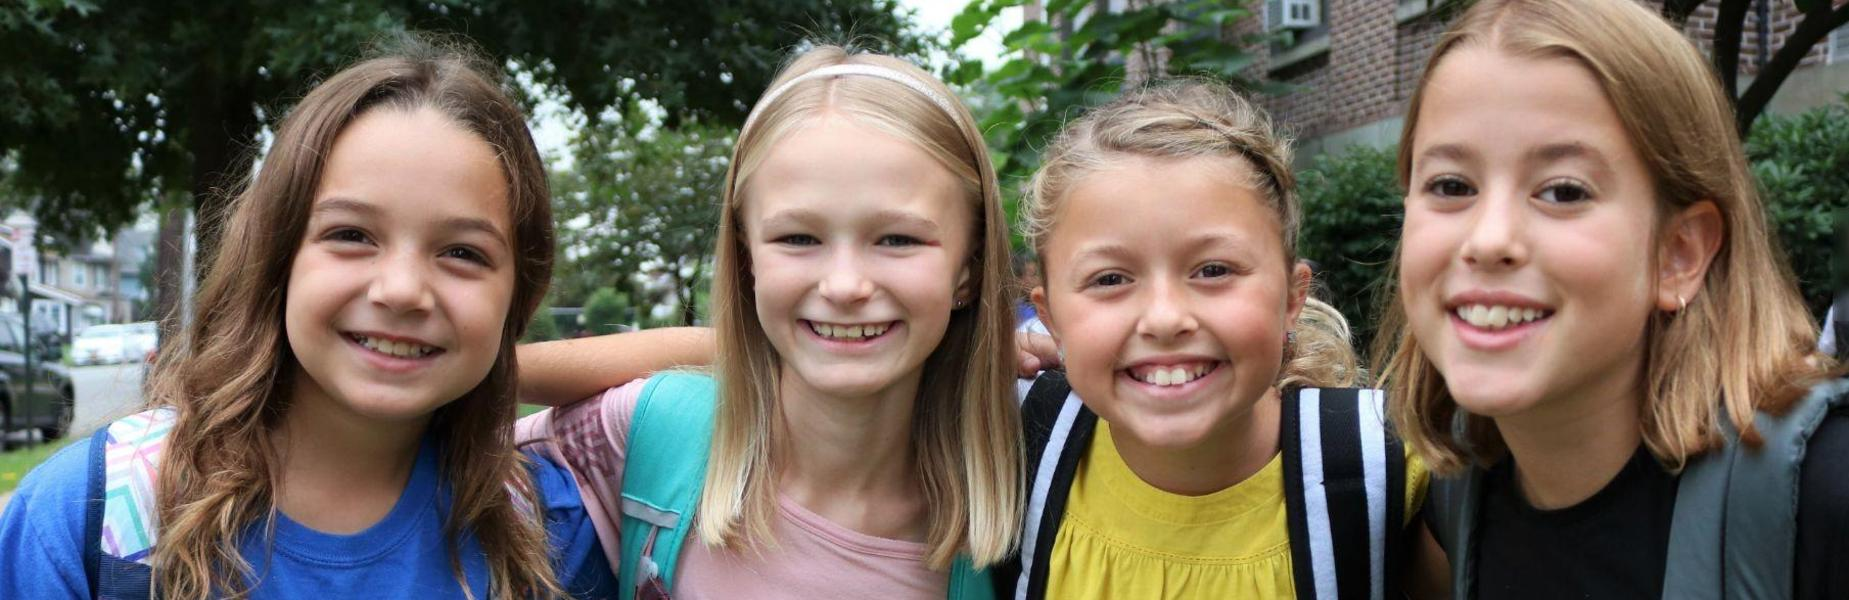 McKinley students smile widely on 3rd day of new school year.